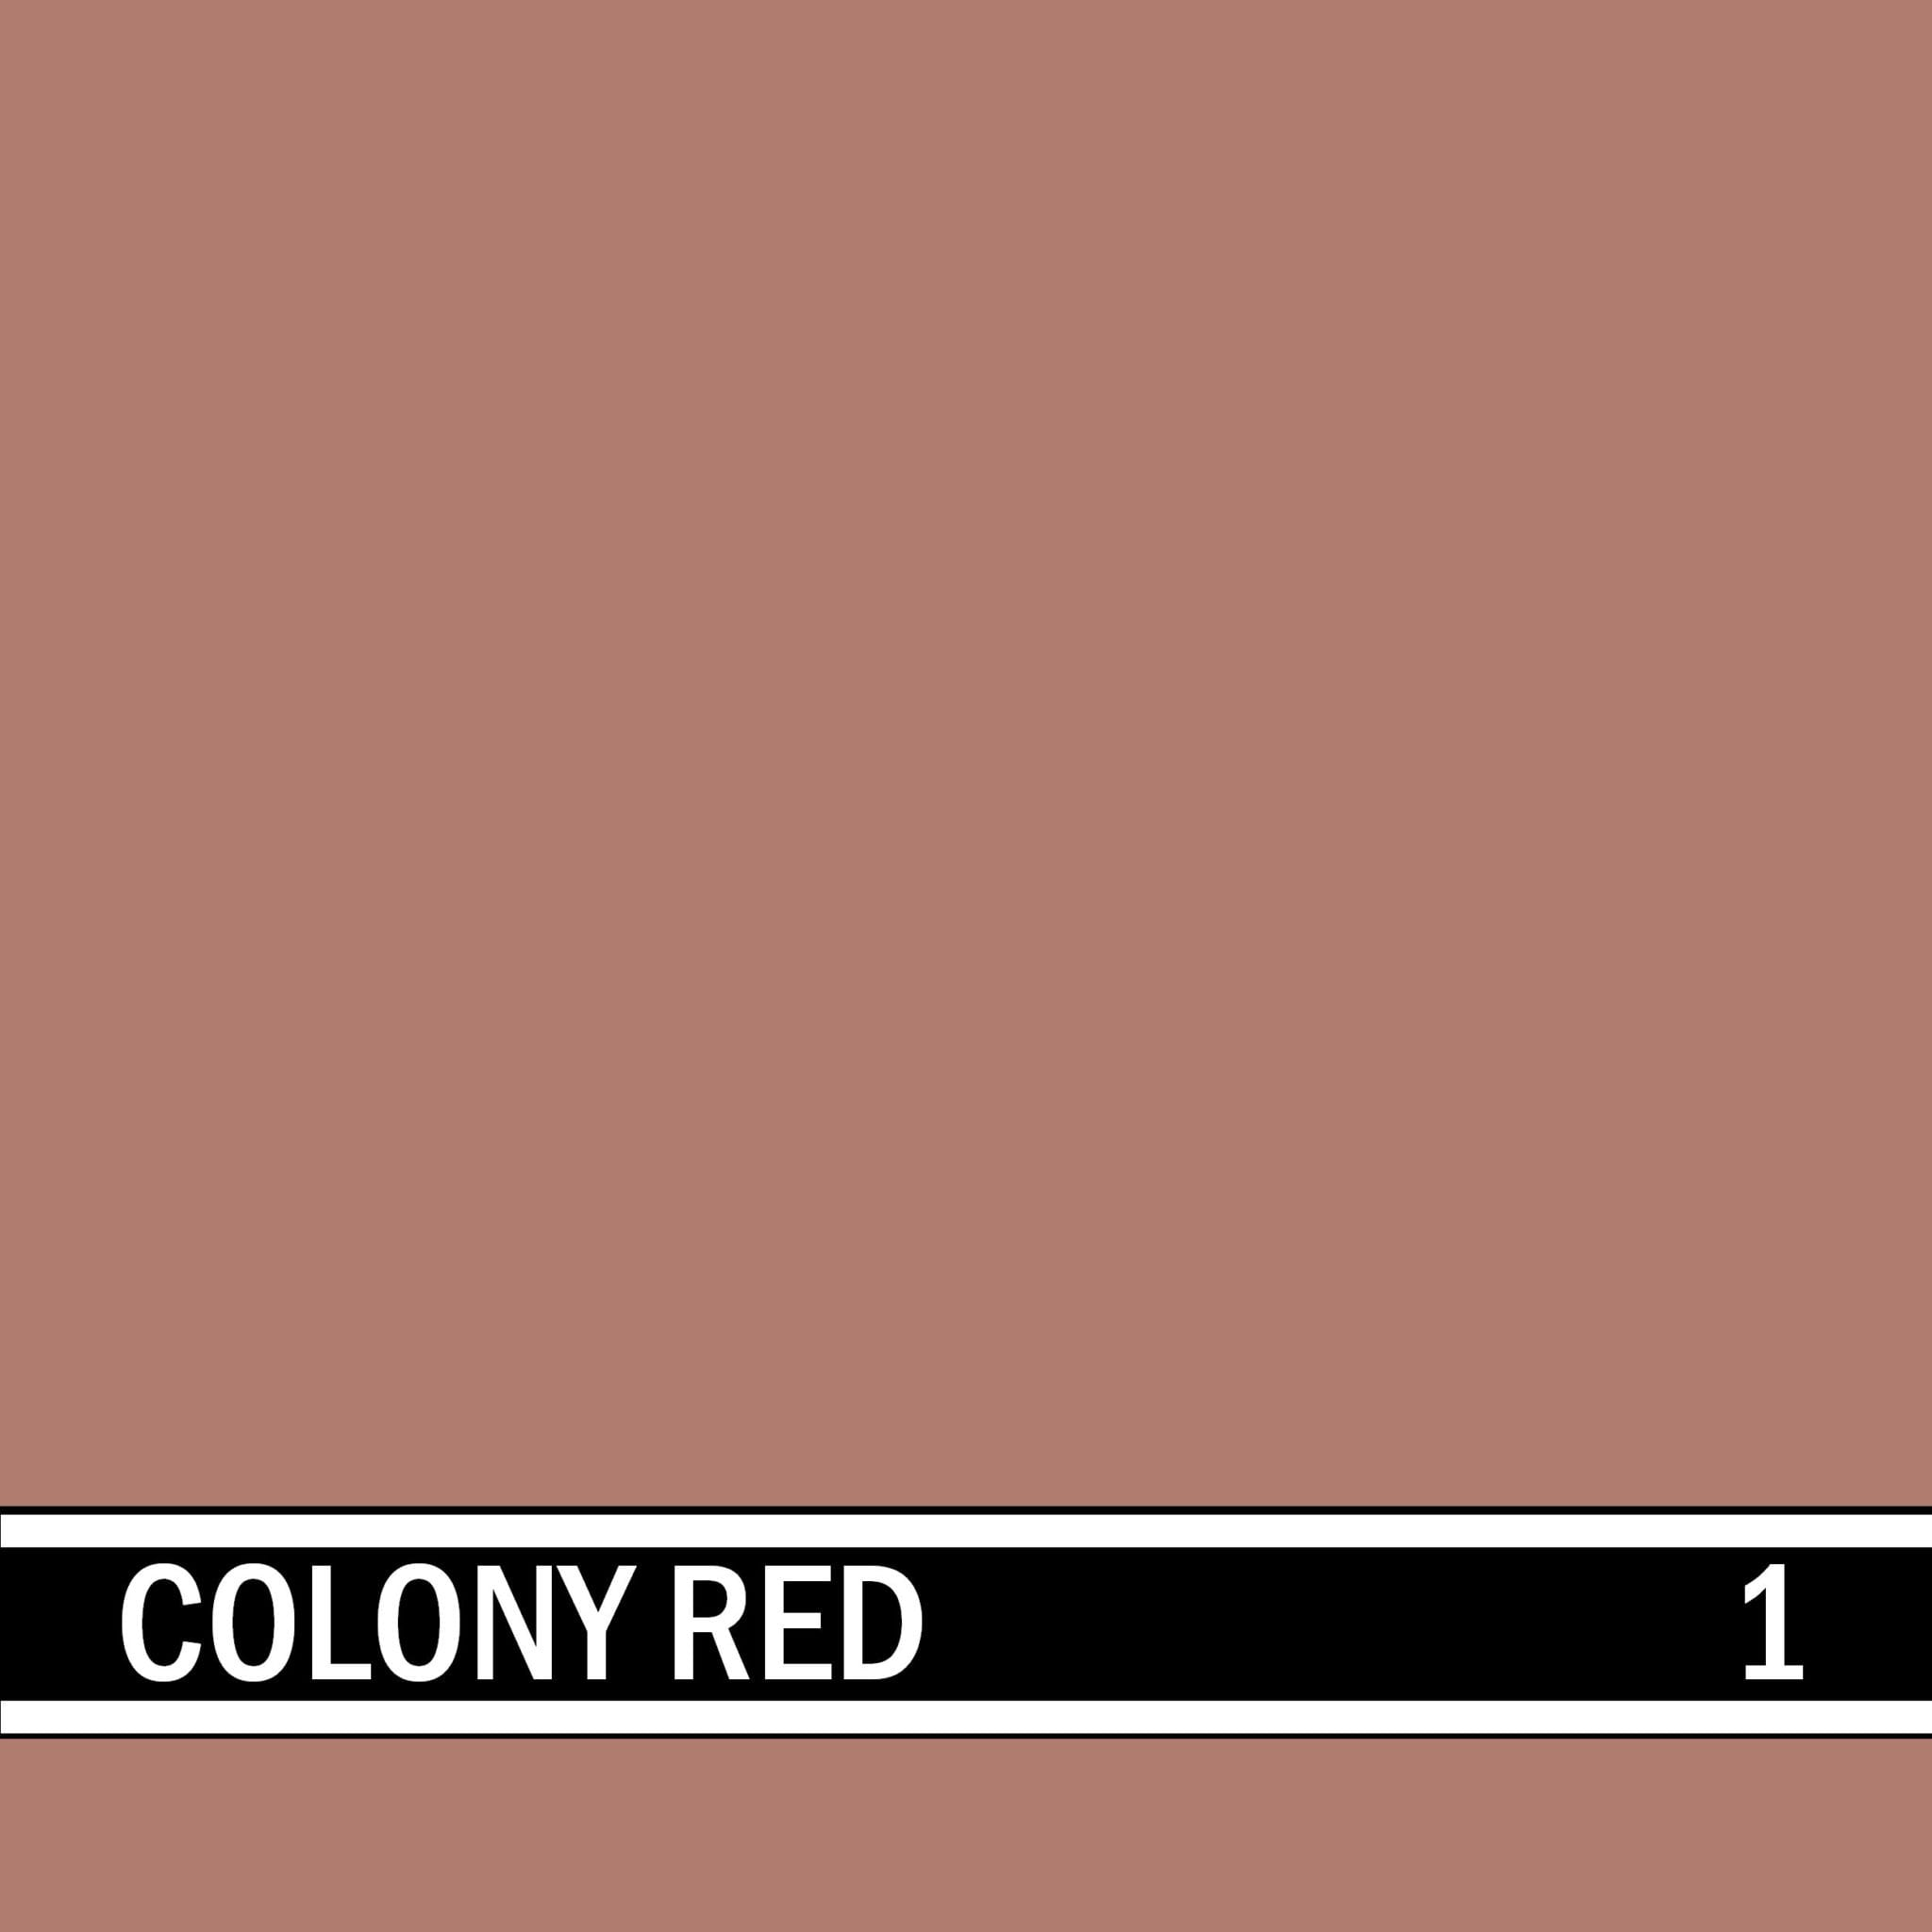 Colony Red integral concrete color for stamped concrete and decorative colored concrete